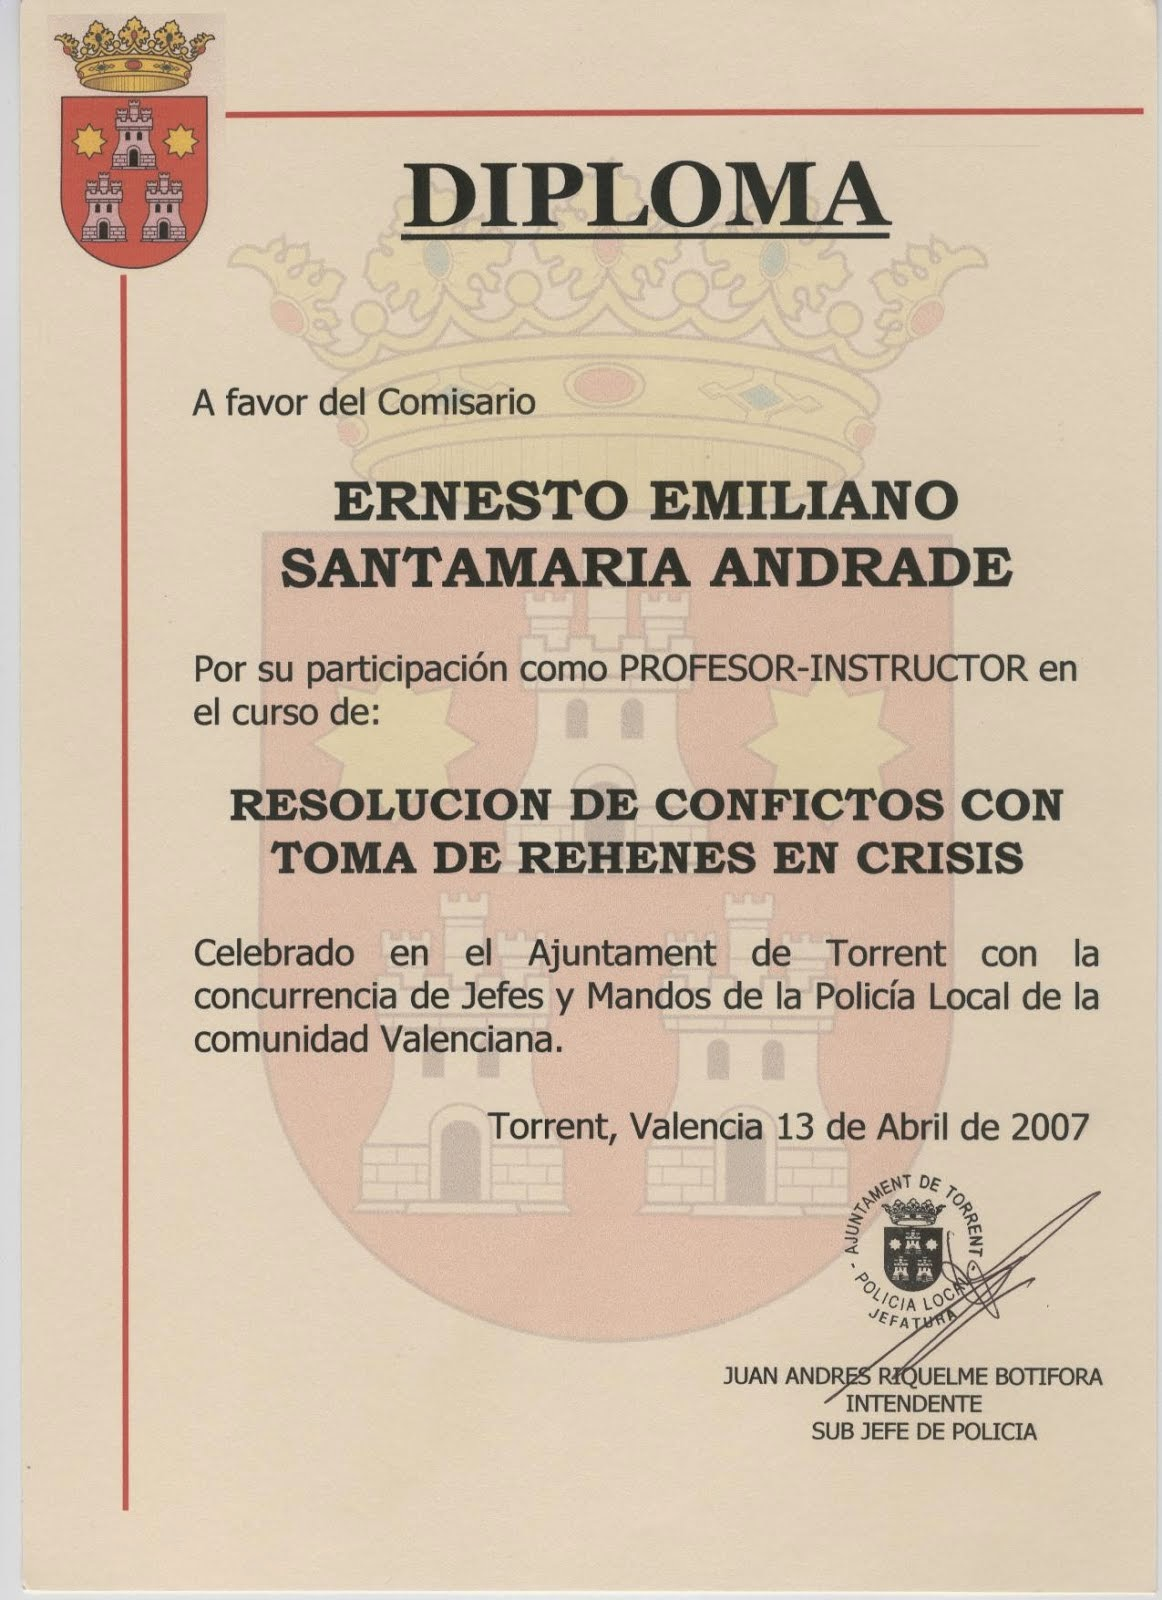 EL COMISARIO ERNESTO SANTAMARIA PROFESOR DE LA POLICÍA LOCAL DE COMUNIDAD VALENCIANA